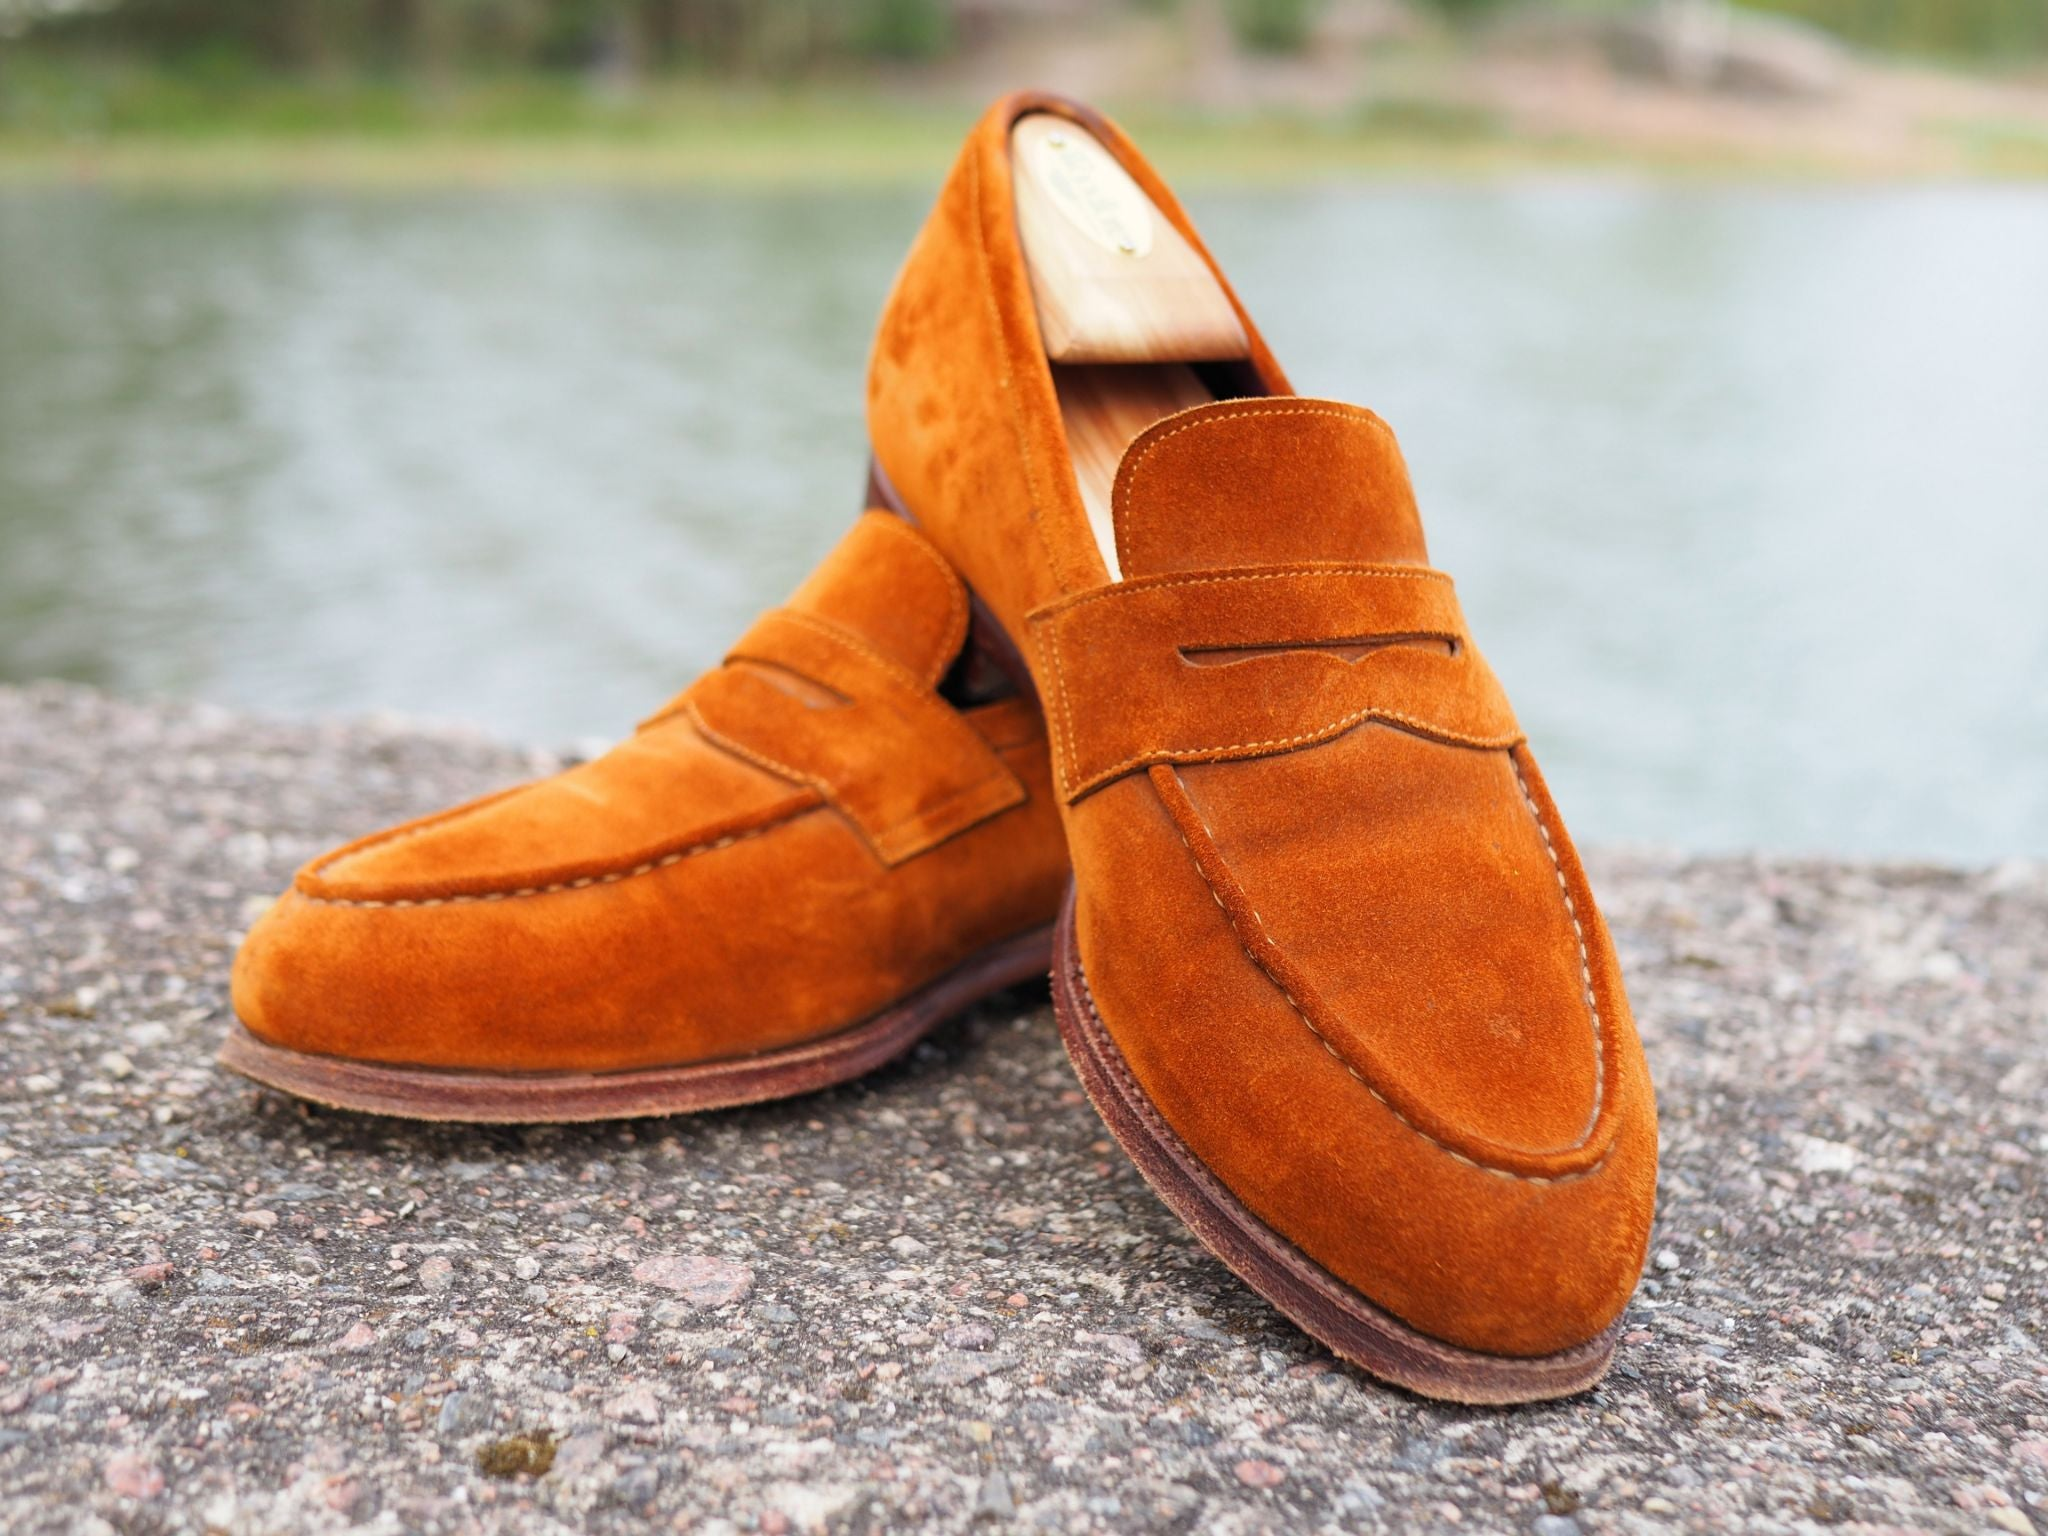 Suede penny loafers are an optimal choice for casual summer combinations.